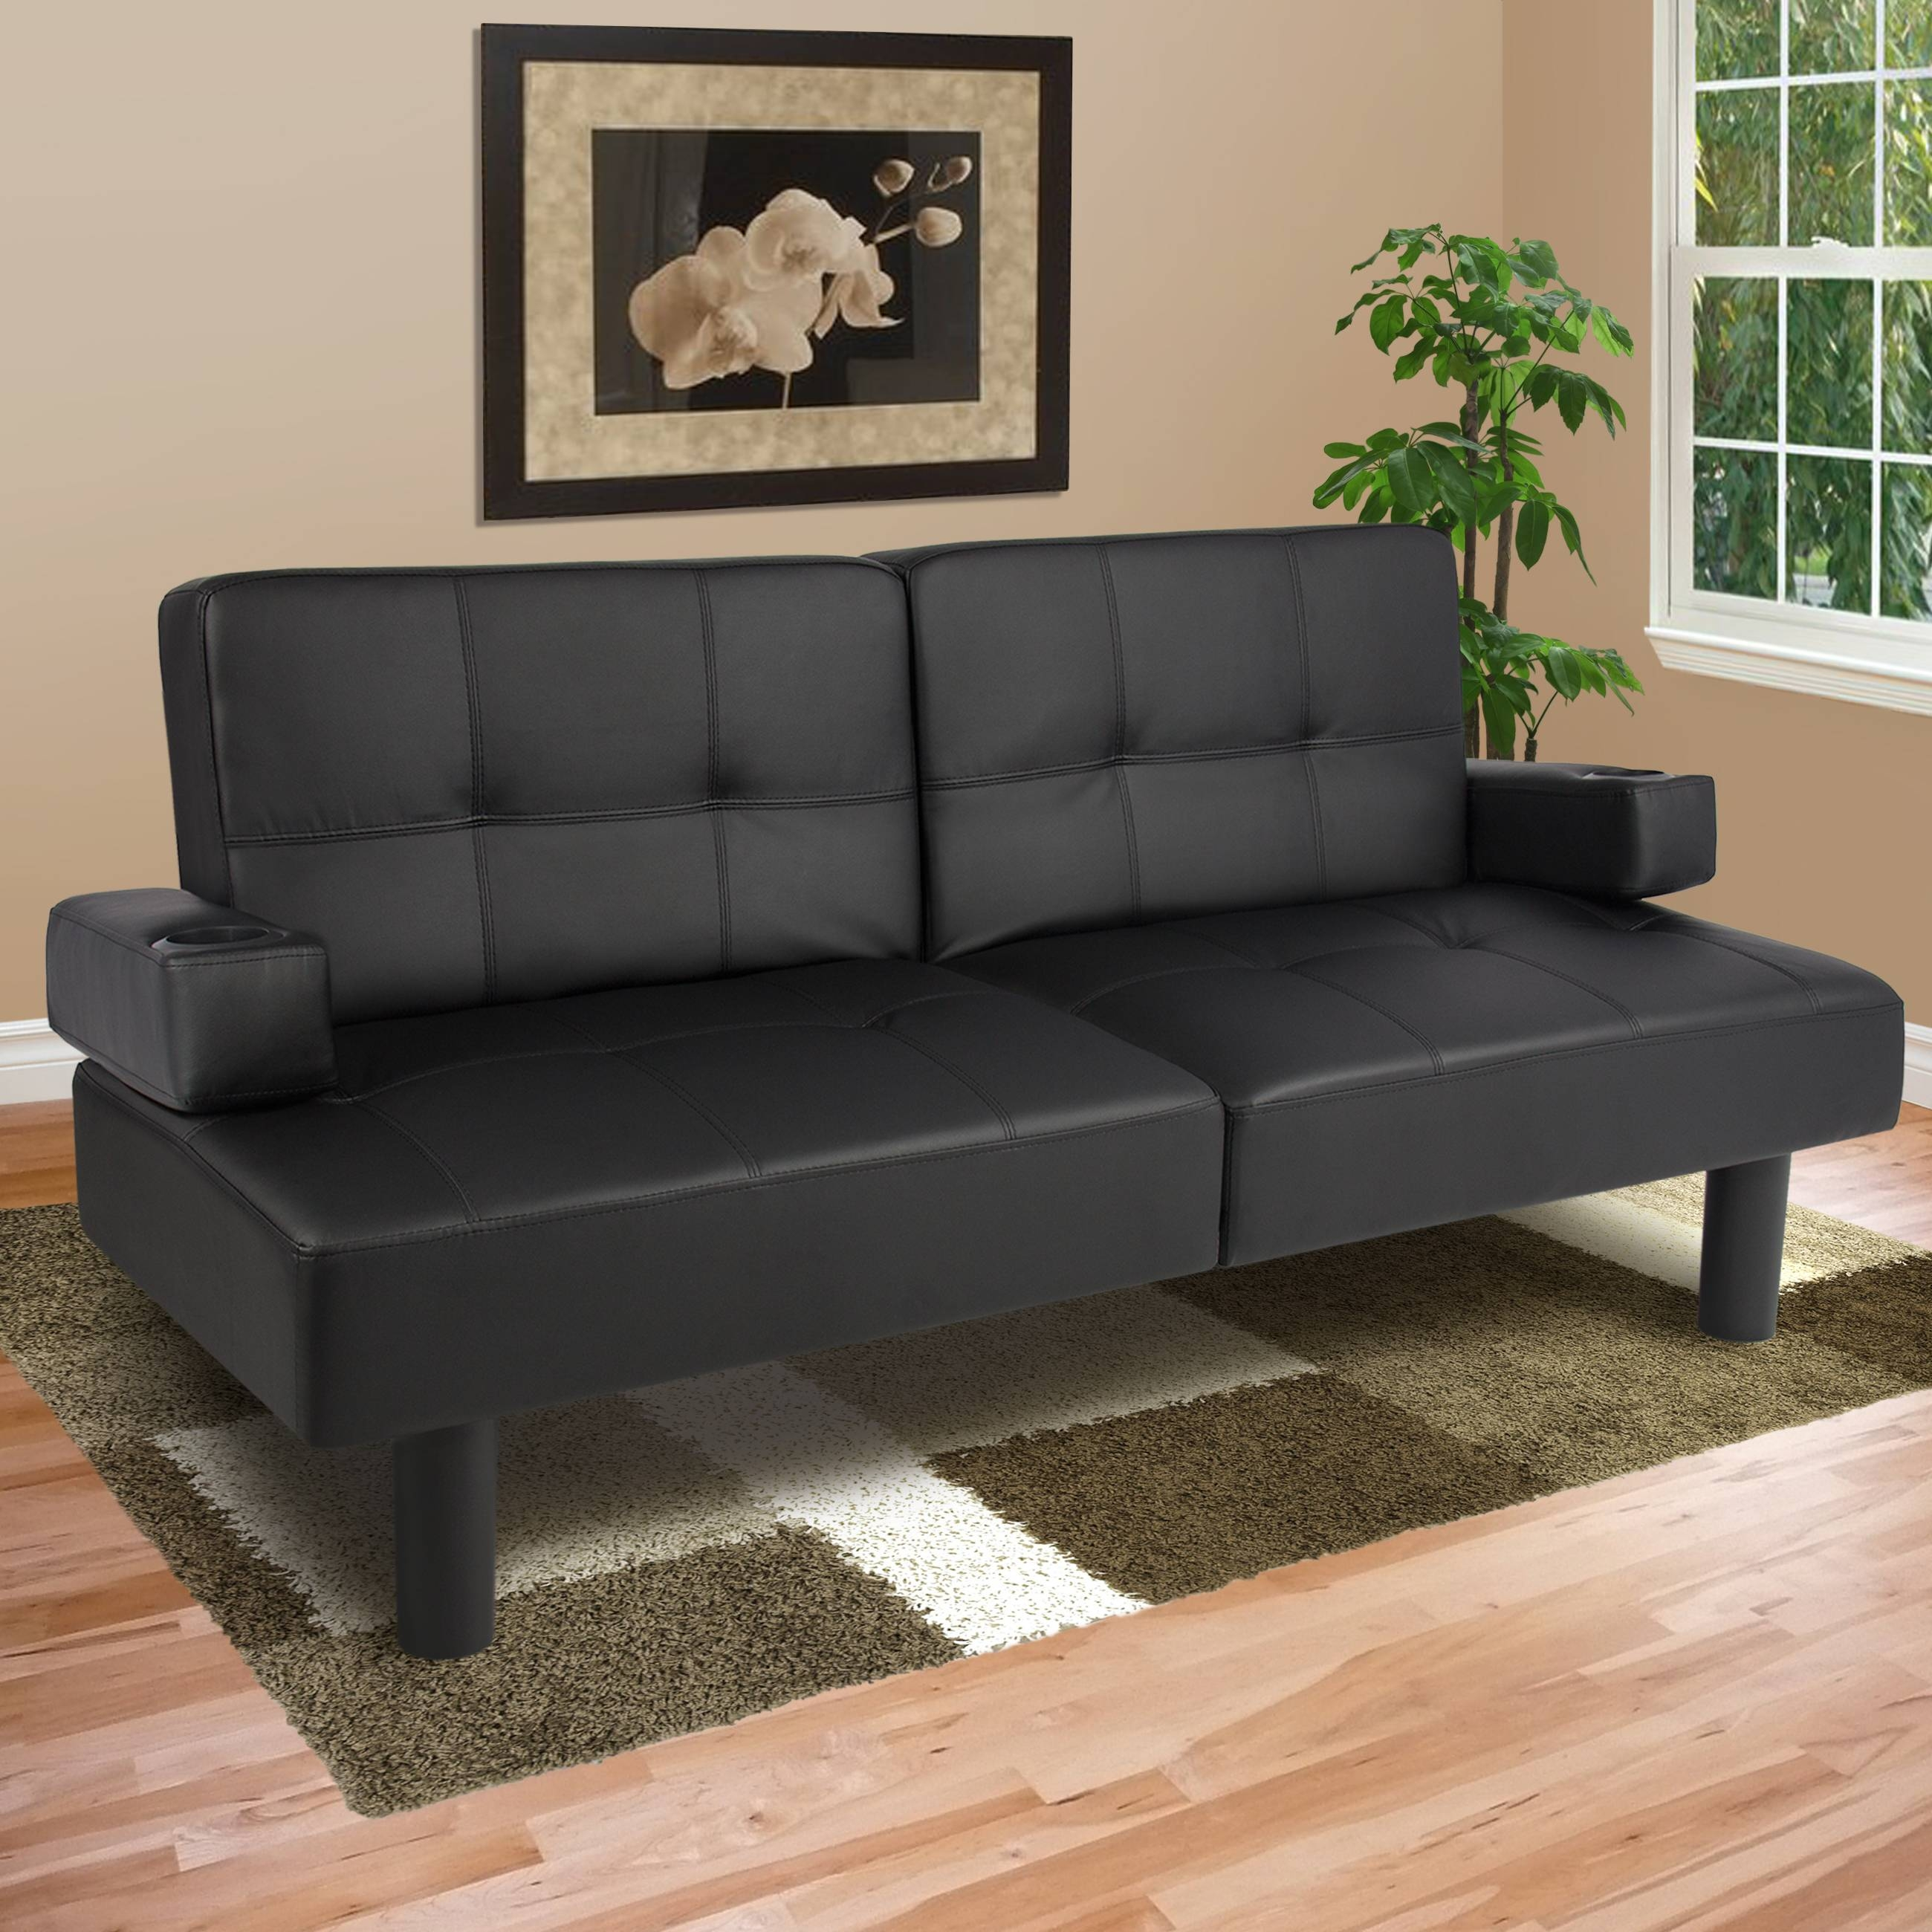 Furniture: Maximize Your Small Space With Cool Futon Bed Walmart intended for Faux Leather Futon Sofas (Image 9 of 15)